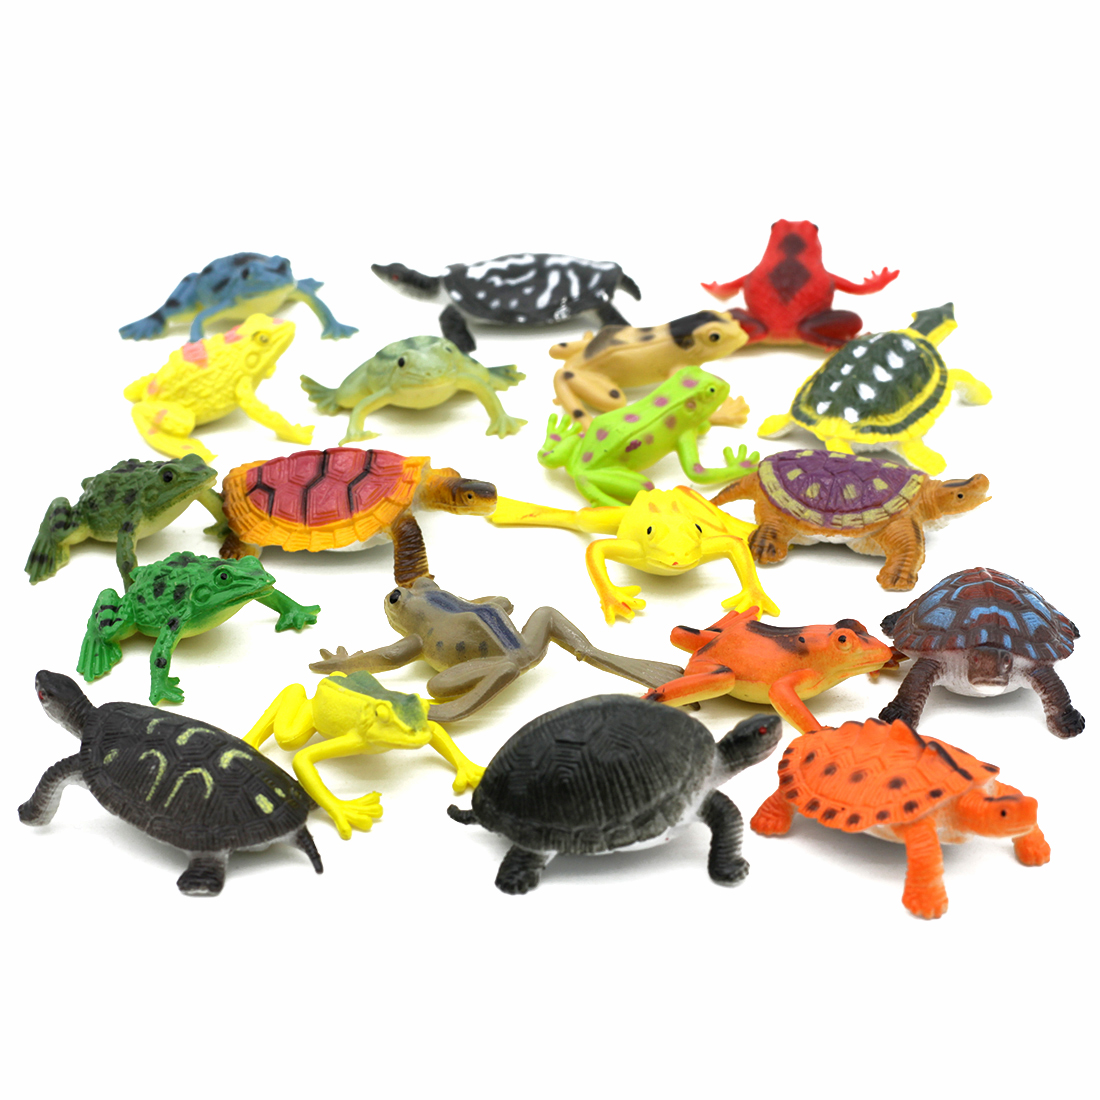 Toy Figures Action-Toy Animal-Model Frogs Dinosaur Turtles Plastic Interesting for Children